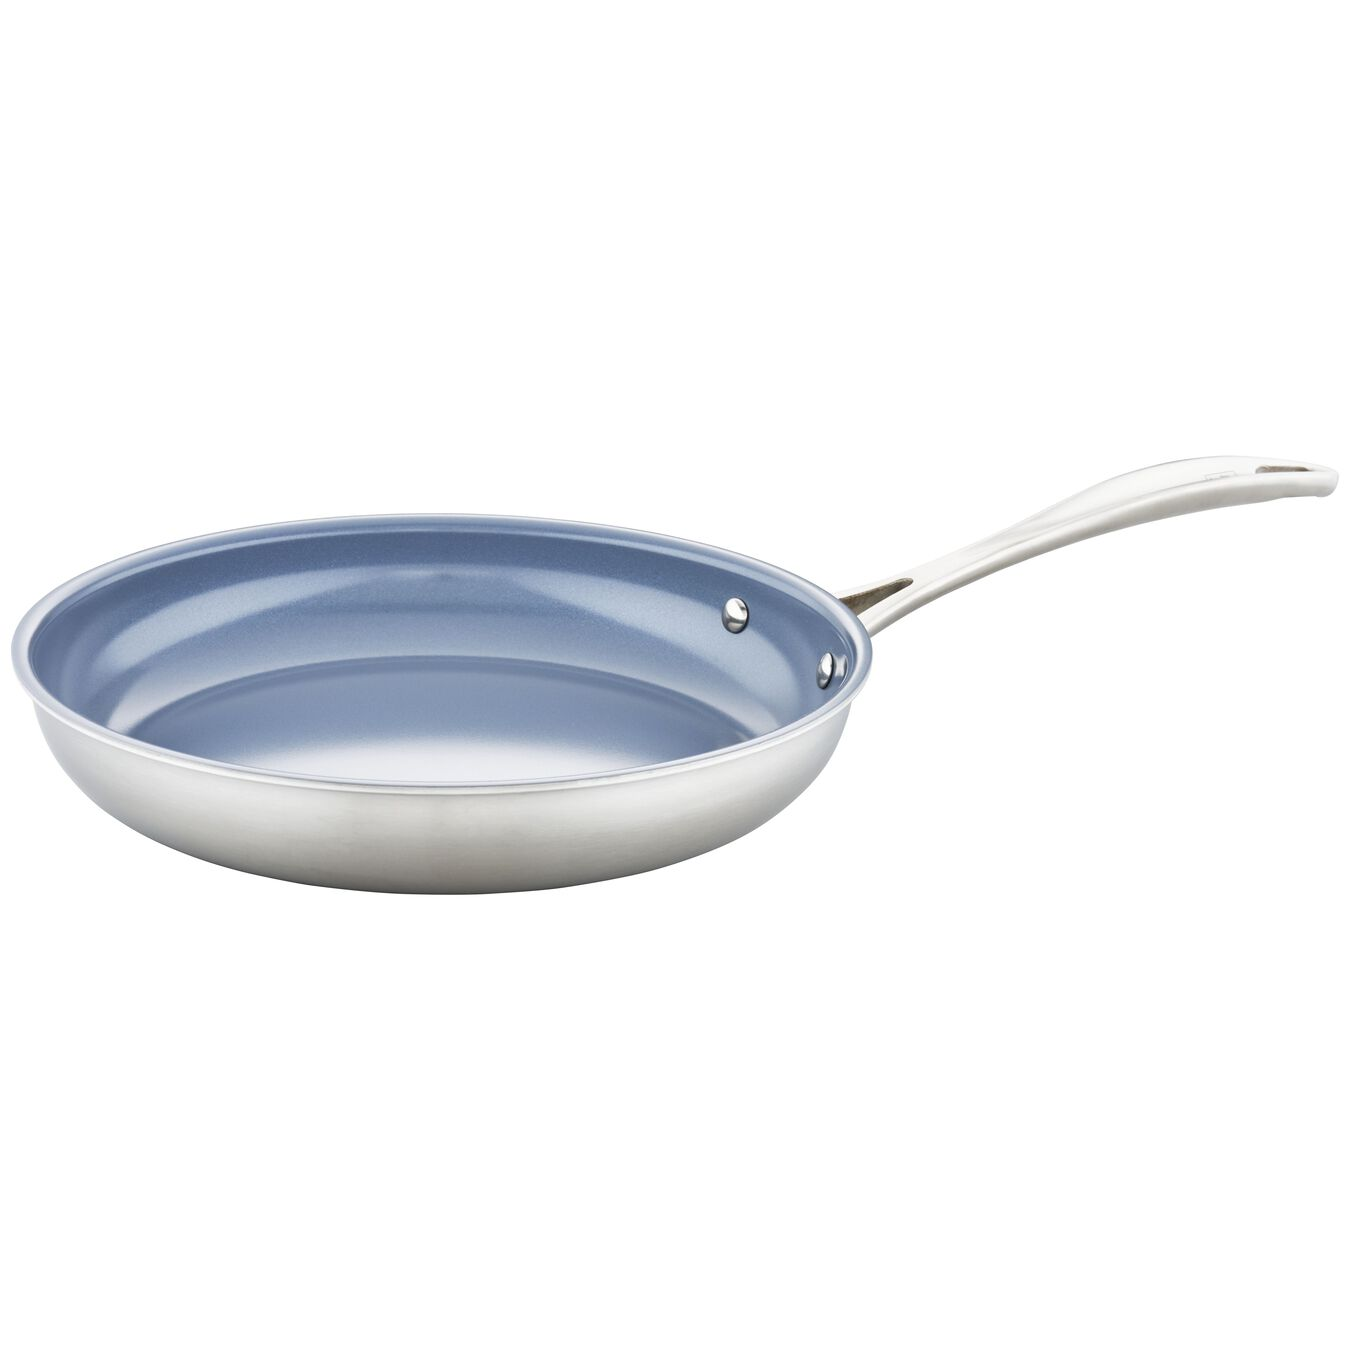 3-ply 7-pc Stainless Steel Ceramic Nonstick Cookware Set,,large 2